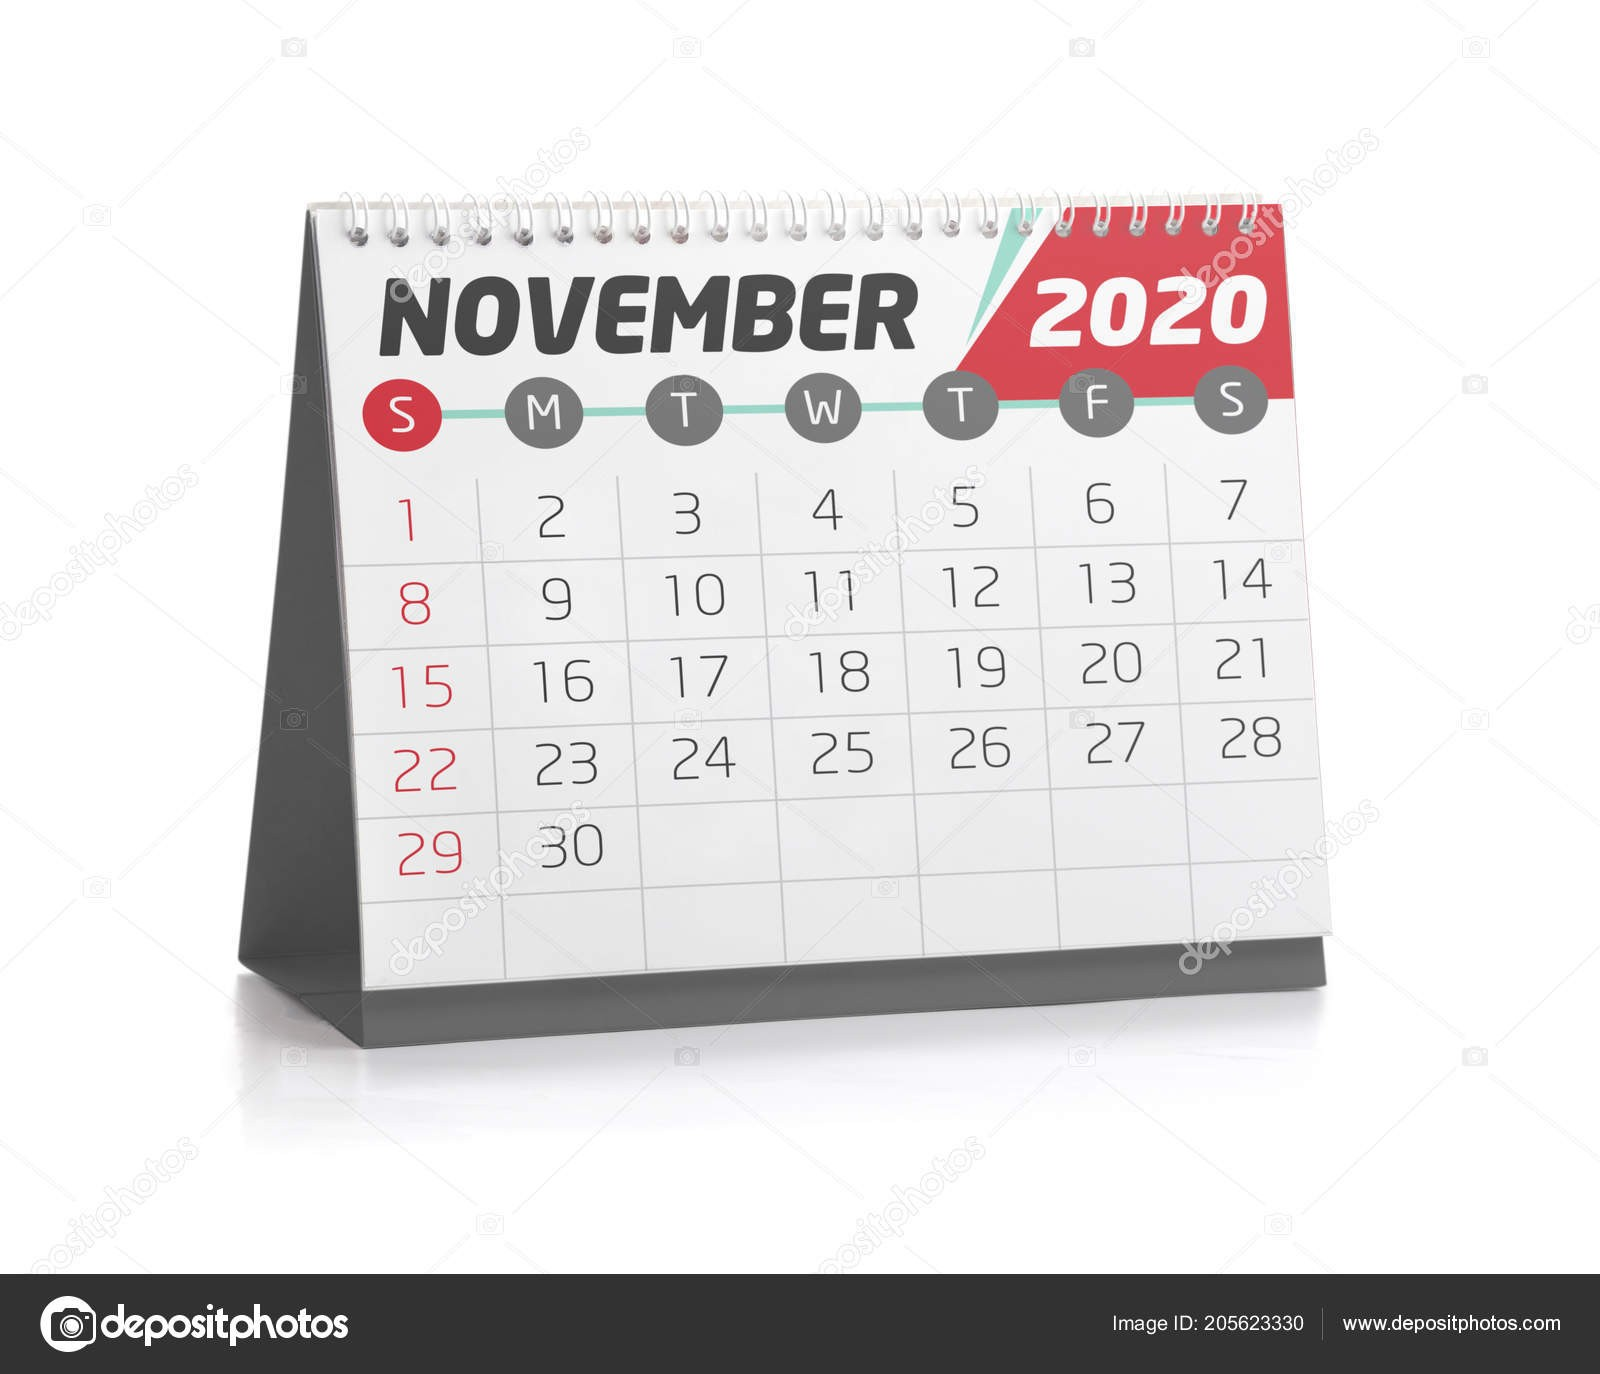 depositphotos stock photo november white office calendar 2020